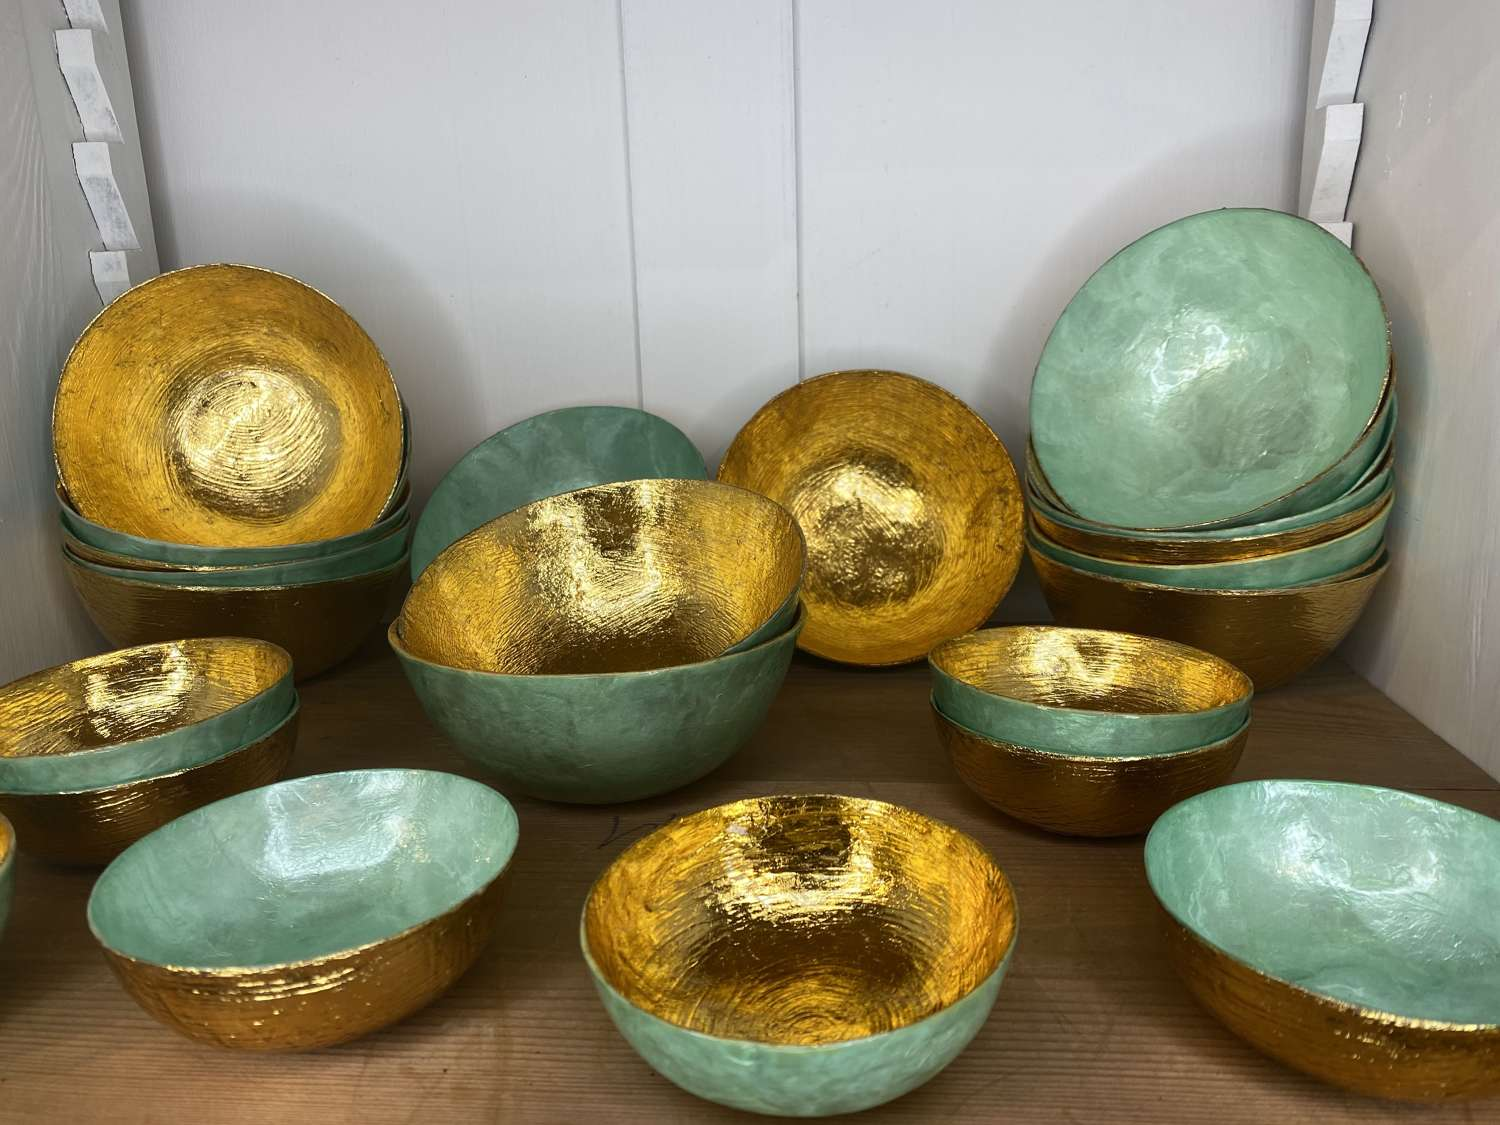 Green & Gold Lacquer Bowls (sold individually)